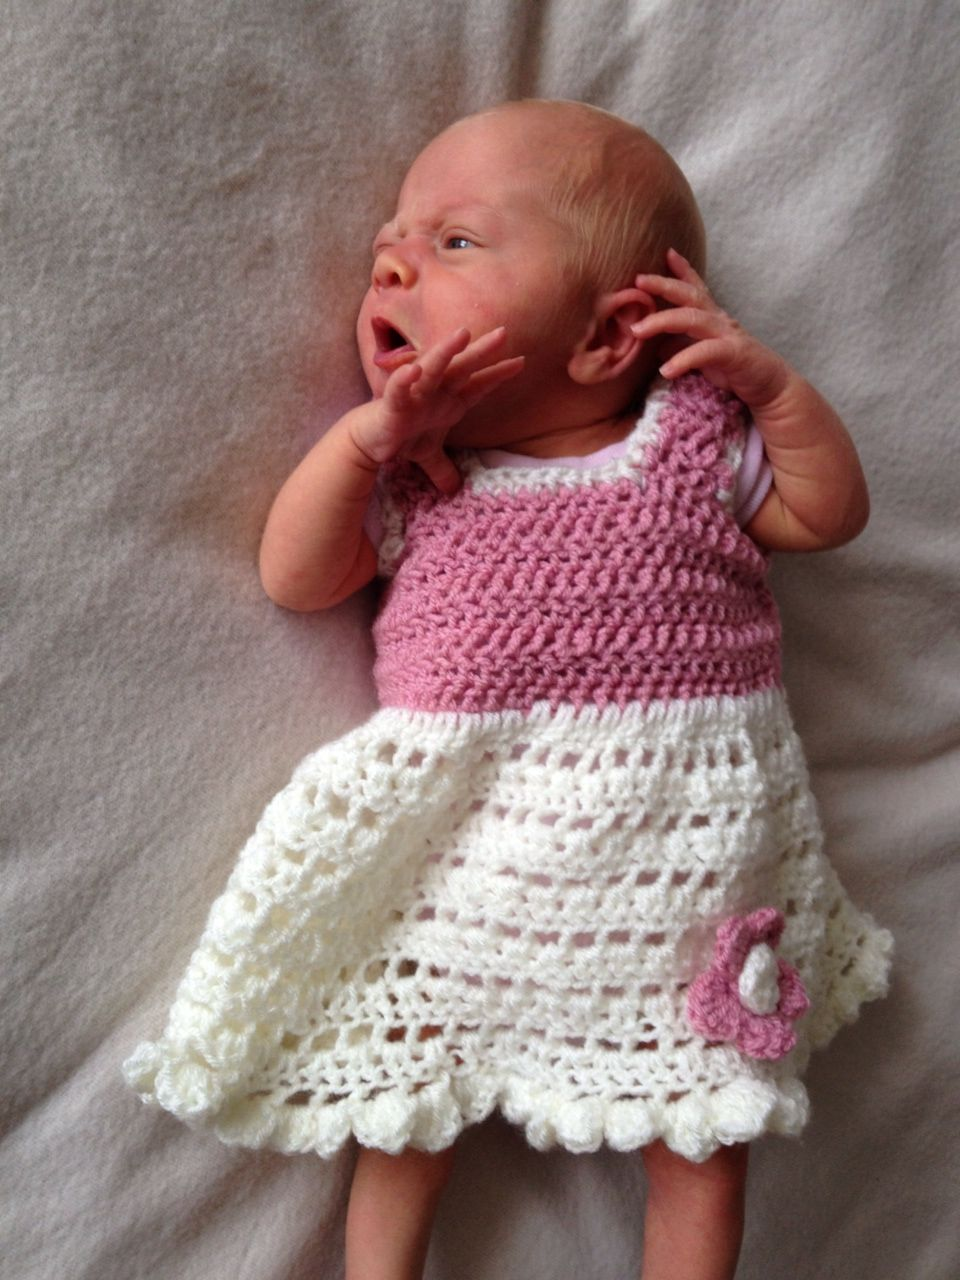 Free crochet pattern-newborn frilly flower dress | Yarnibles ...